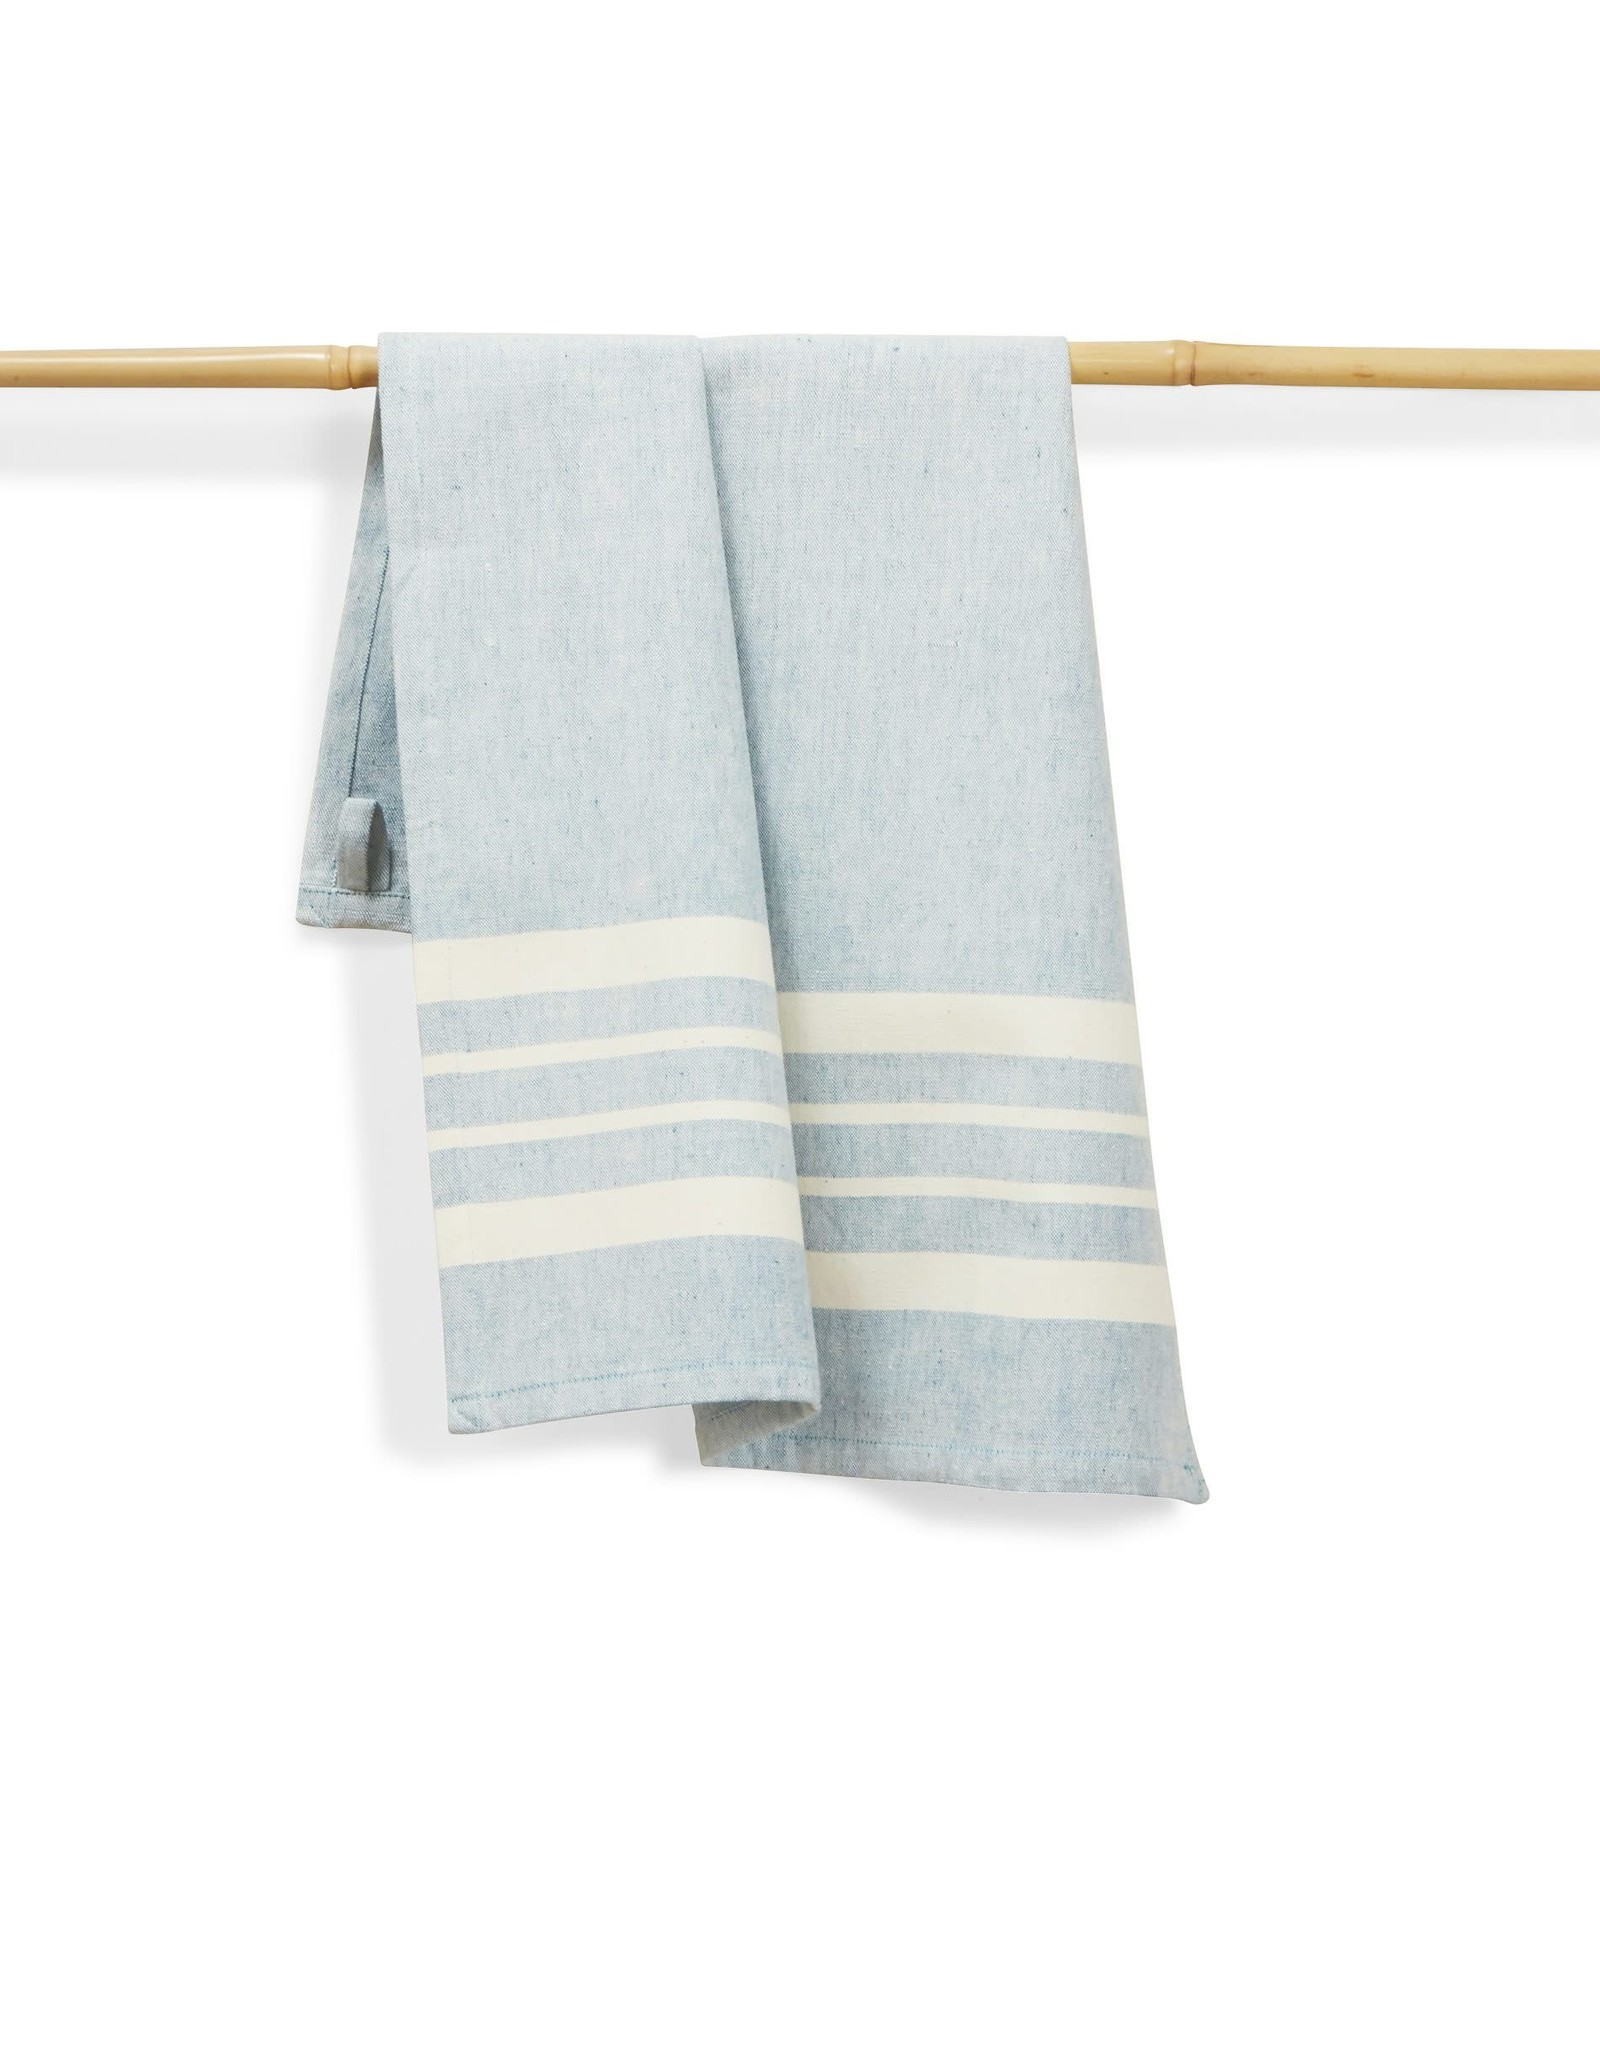 27 x 19 Cotton Handwoven Kitchen Towels Sky, India